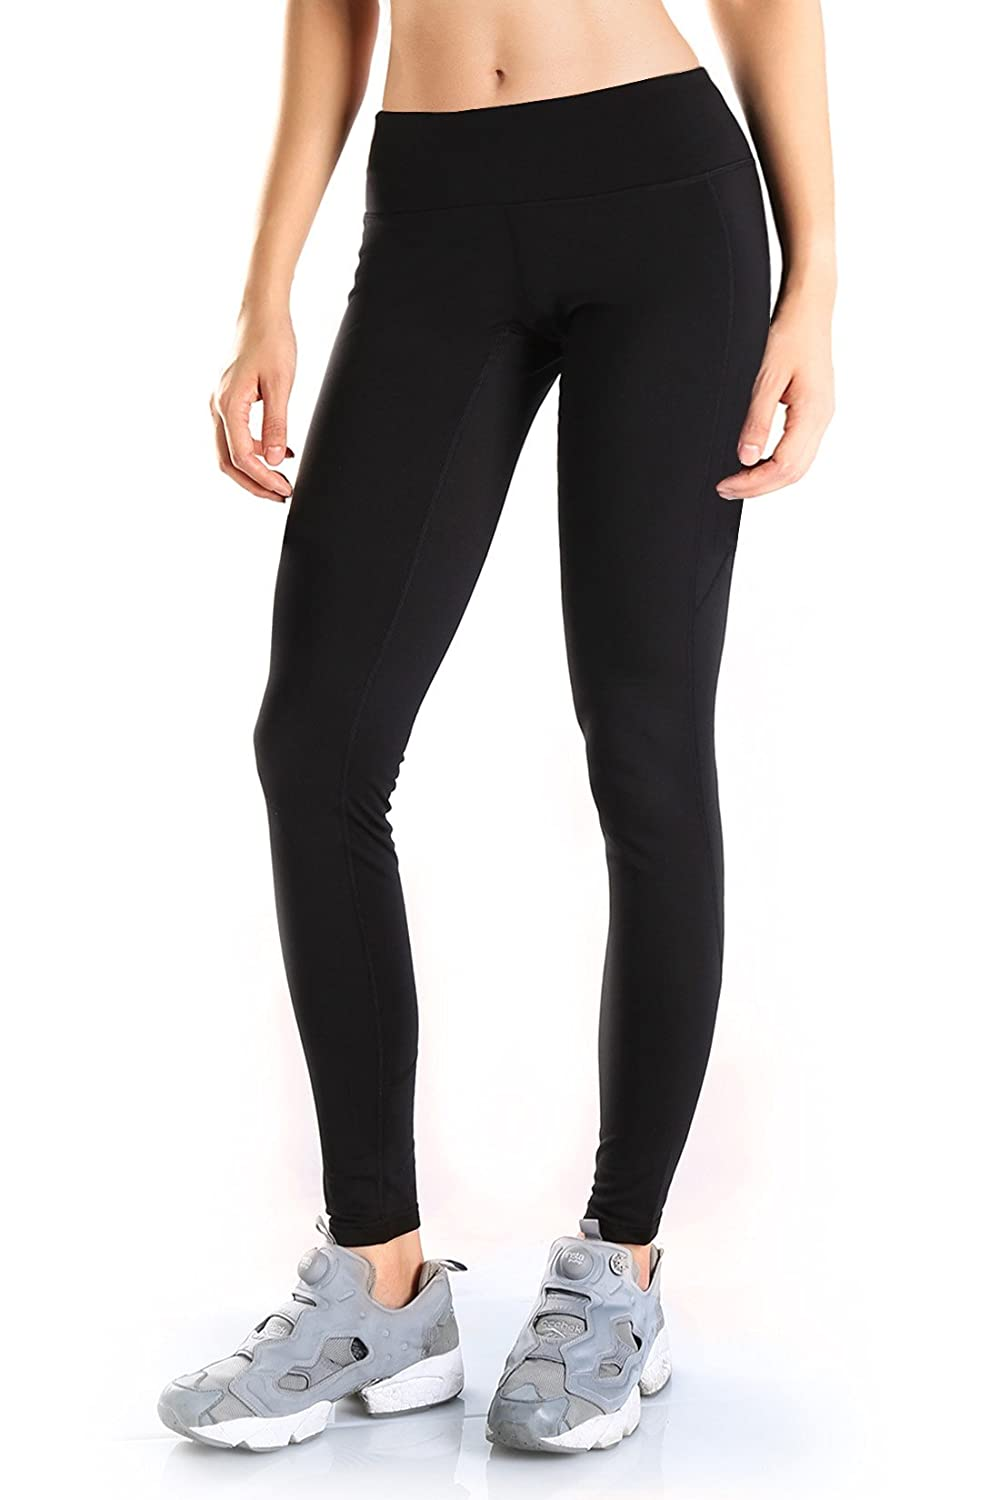 Yogipace Petite/Regular/Tall,25/28/31/34,Womens Water Resistant Fleece Lined Thermal Tights Winter Running Cycling Skiing Leggings with Zippered Pocket